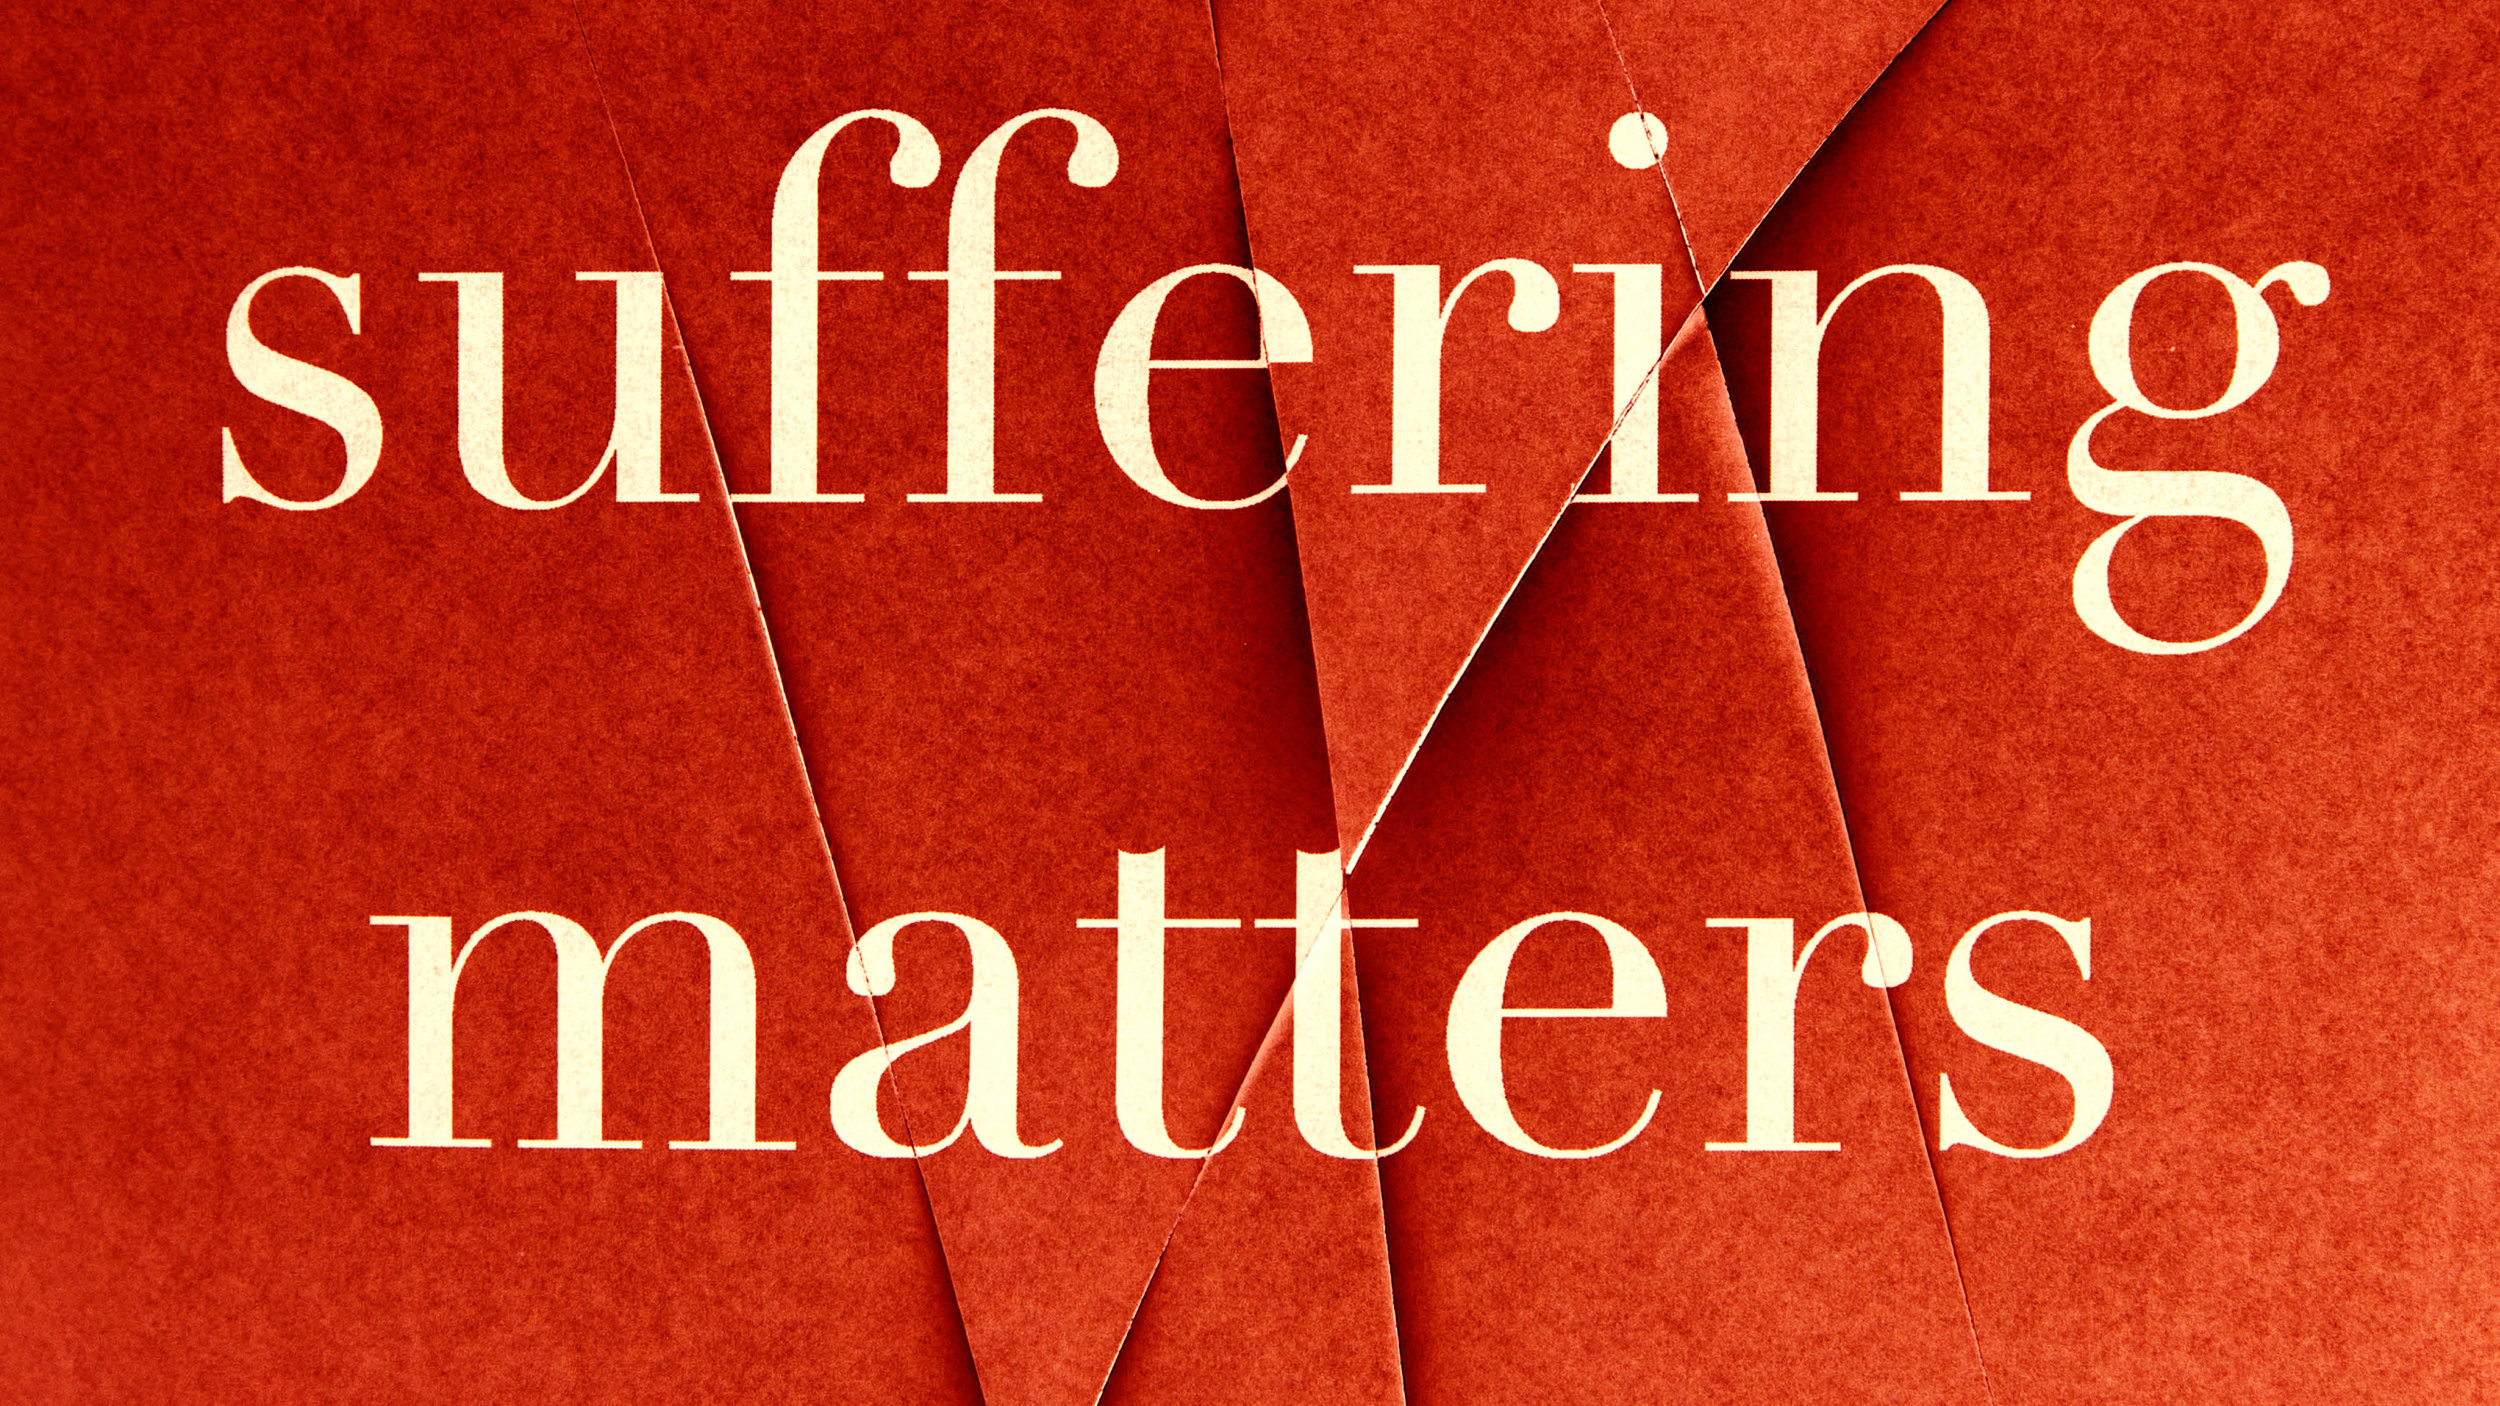 suffering matters slide1.jpg